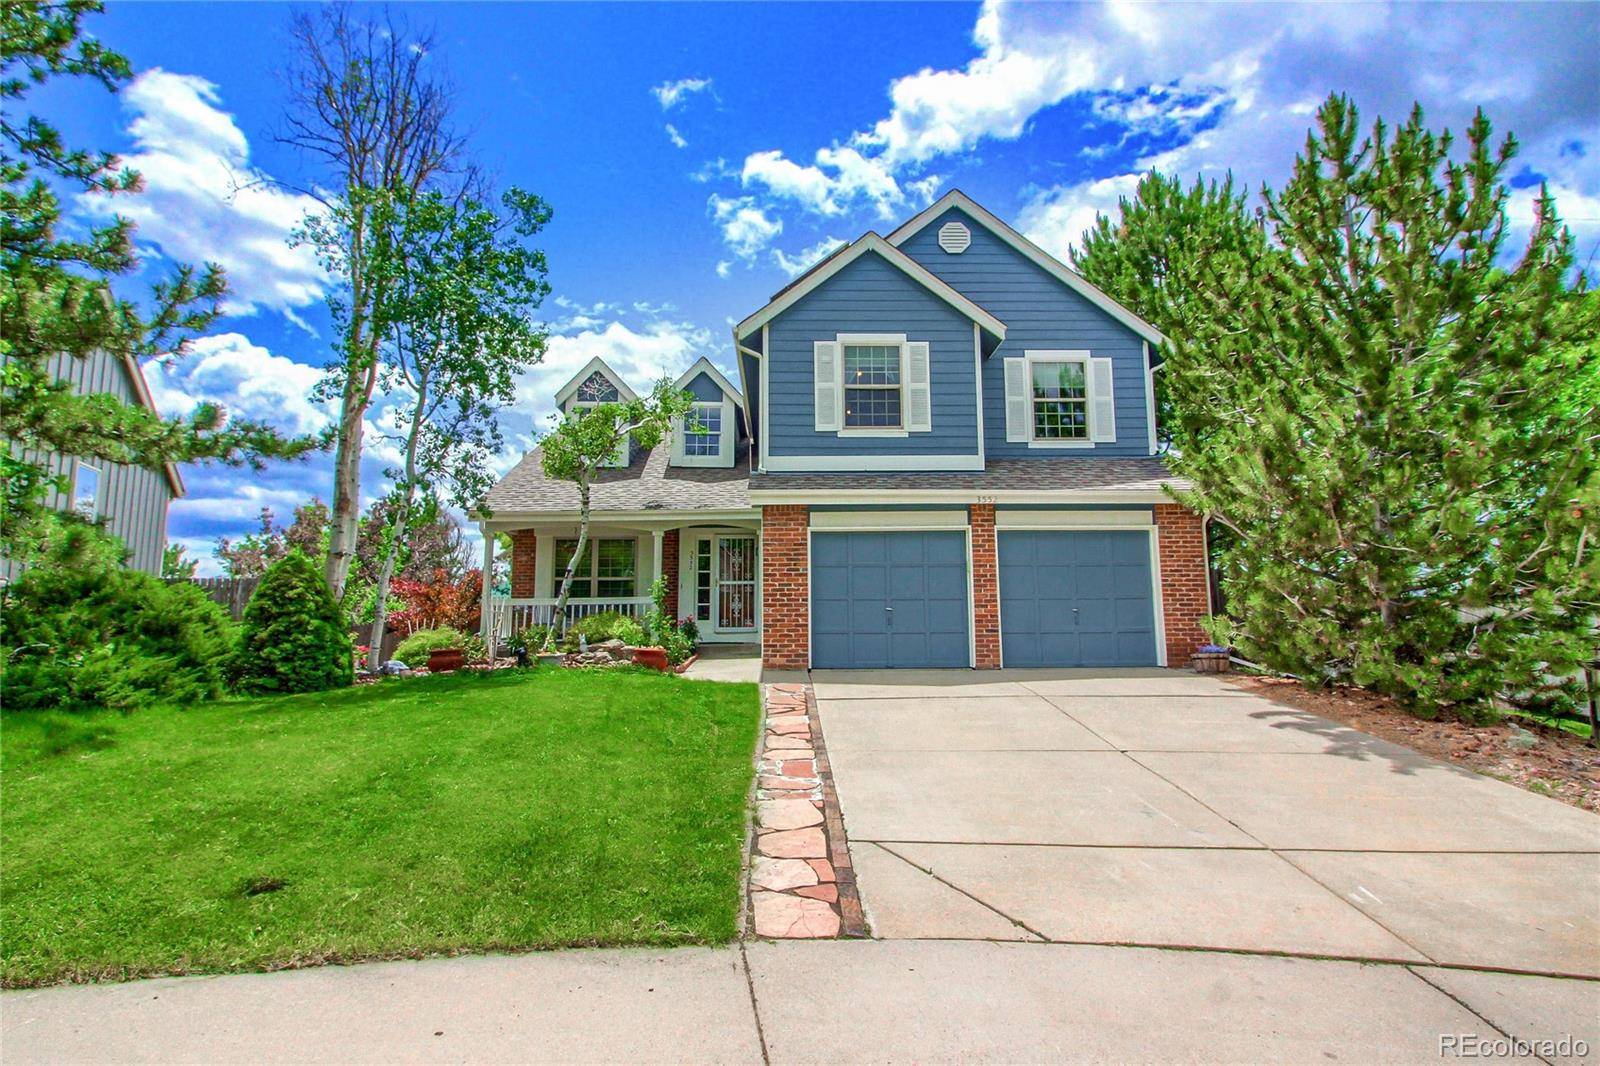 MLS# 9404363 - 2 - 3552 W 100th Place, Westminster, CO 80031